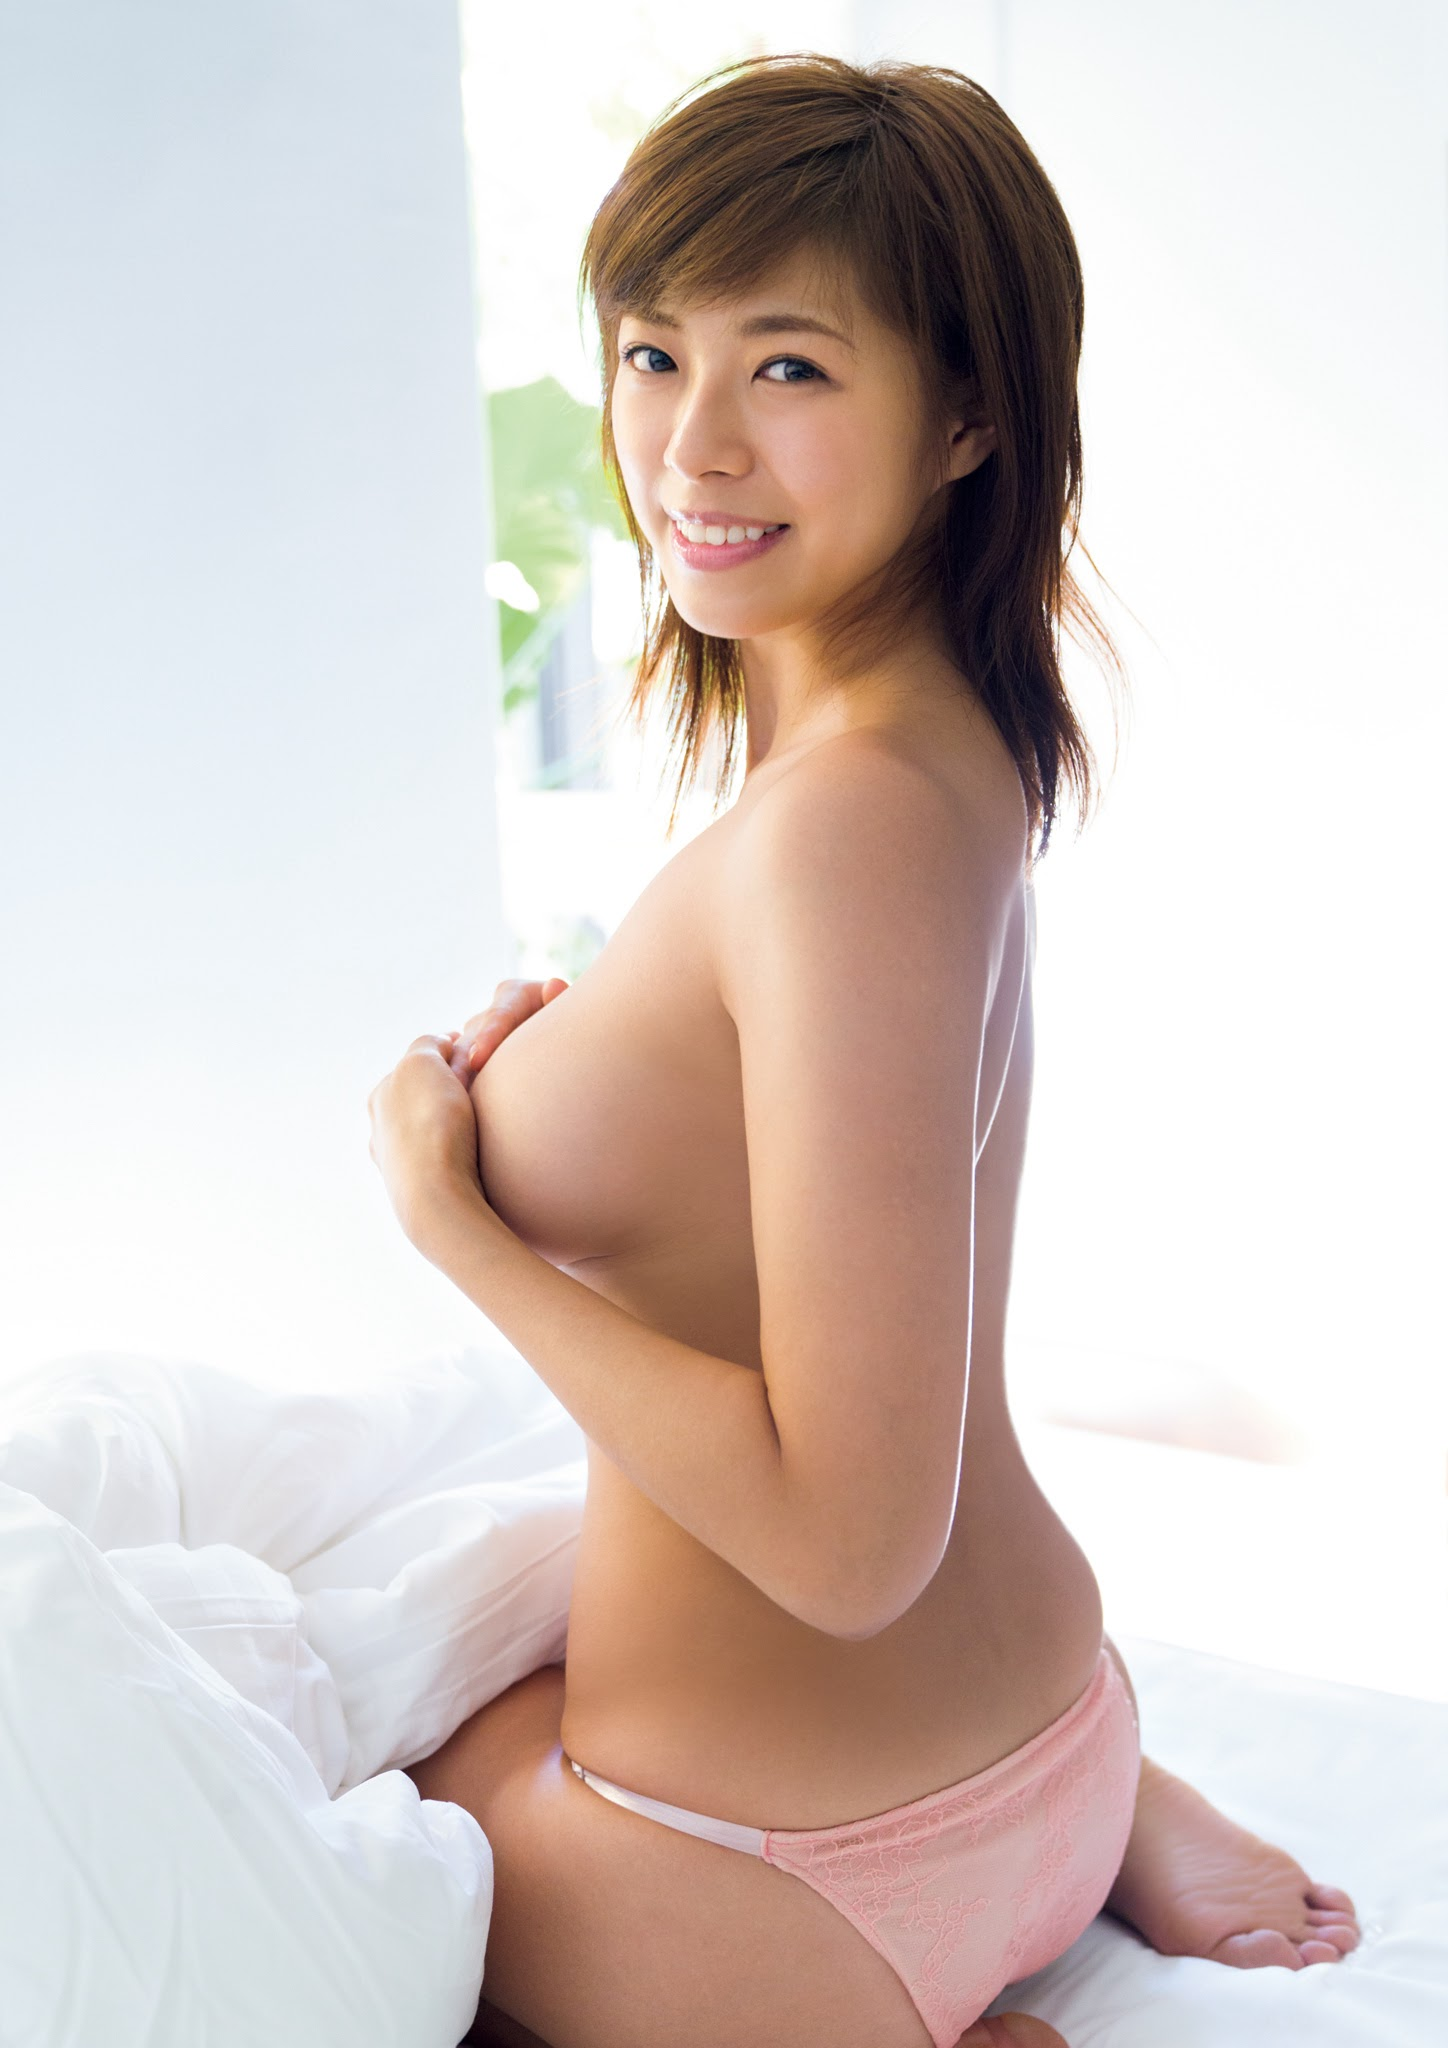 Super body of H cup Minami Wachi 2020 that exposes body and mind in tropical Thailand107